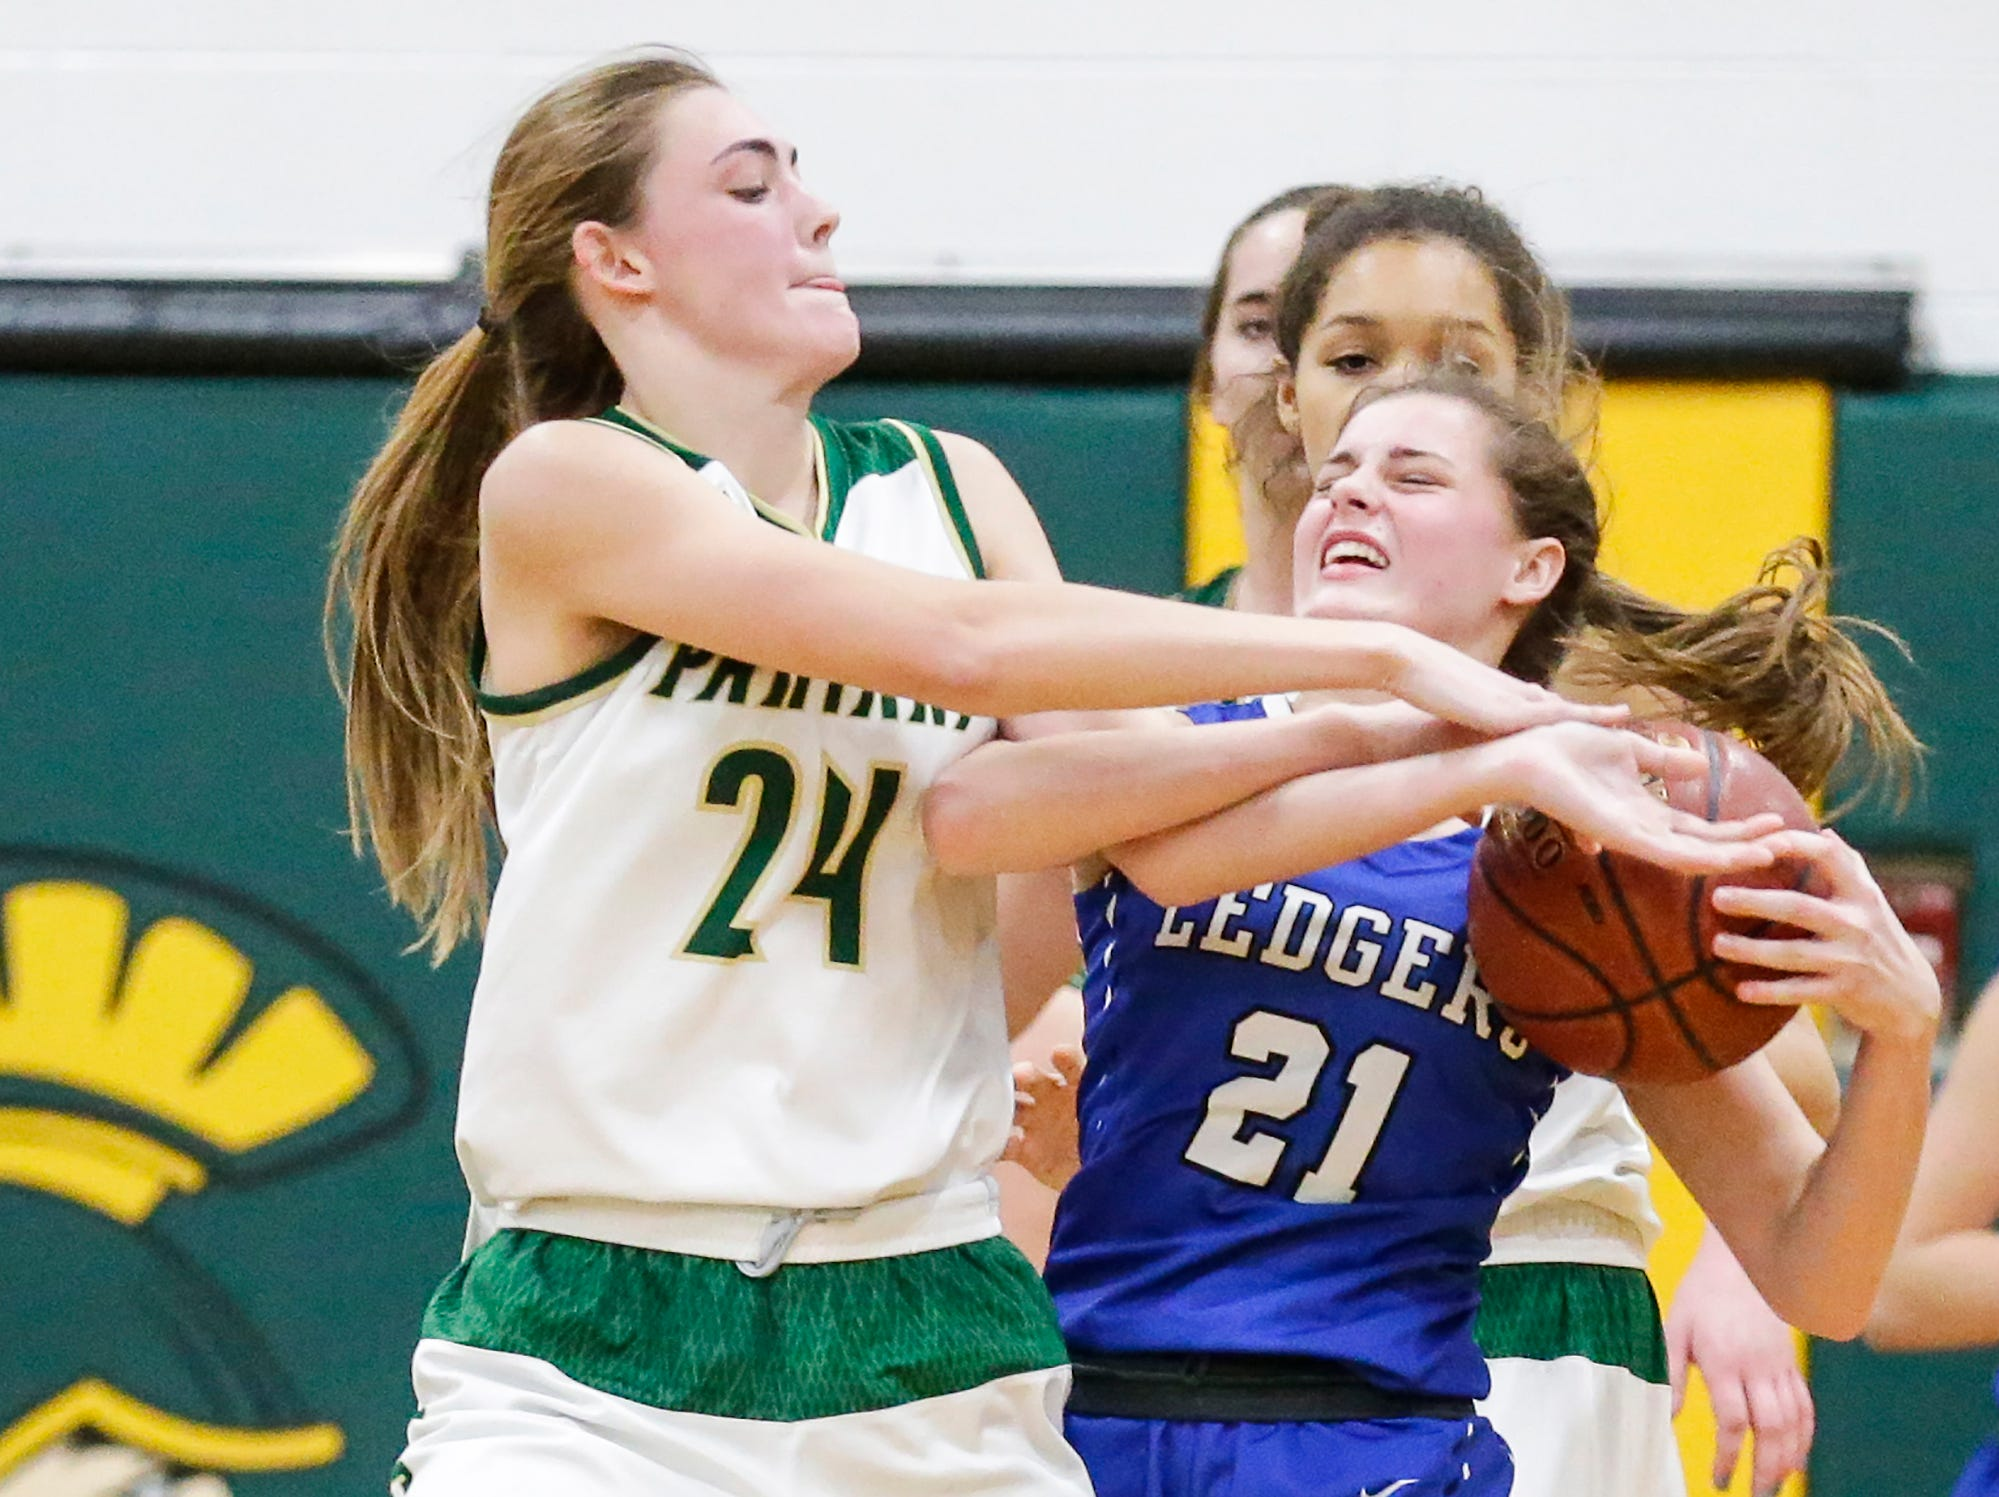 Laconia High School girls basketball's Maci Grade battles for the ball with St. Mary's Springs Academy's Jennifer Chatterton Tuesday, January 15, 2019 during their game in Rosendale. Laconia won the game 57-45. Doug Raflik/USA TODAY NETWORK-Wisconsin